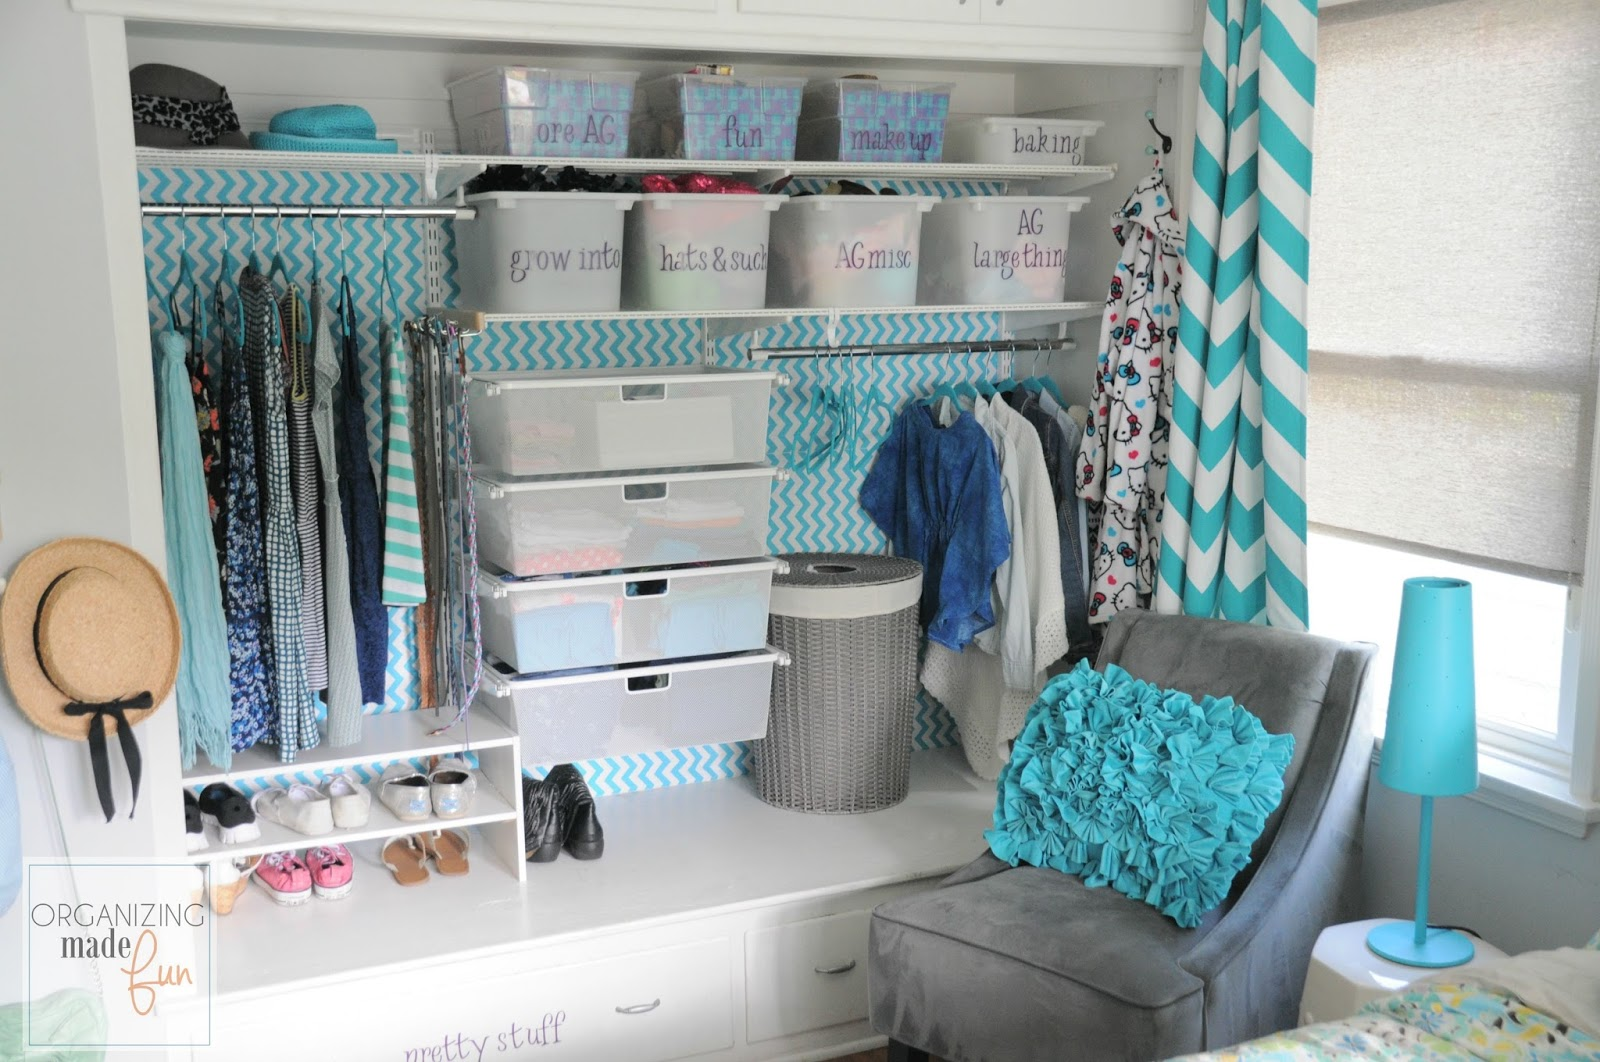 Closet Organizing Tips Image By Blogspot